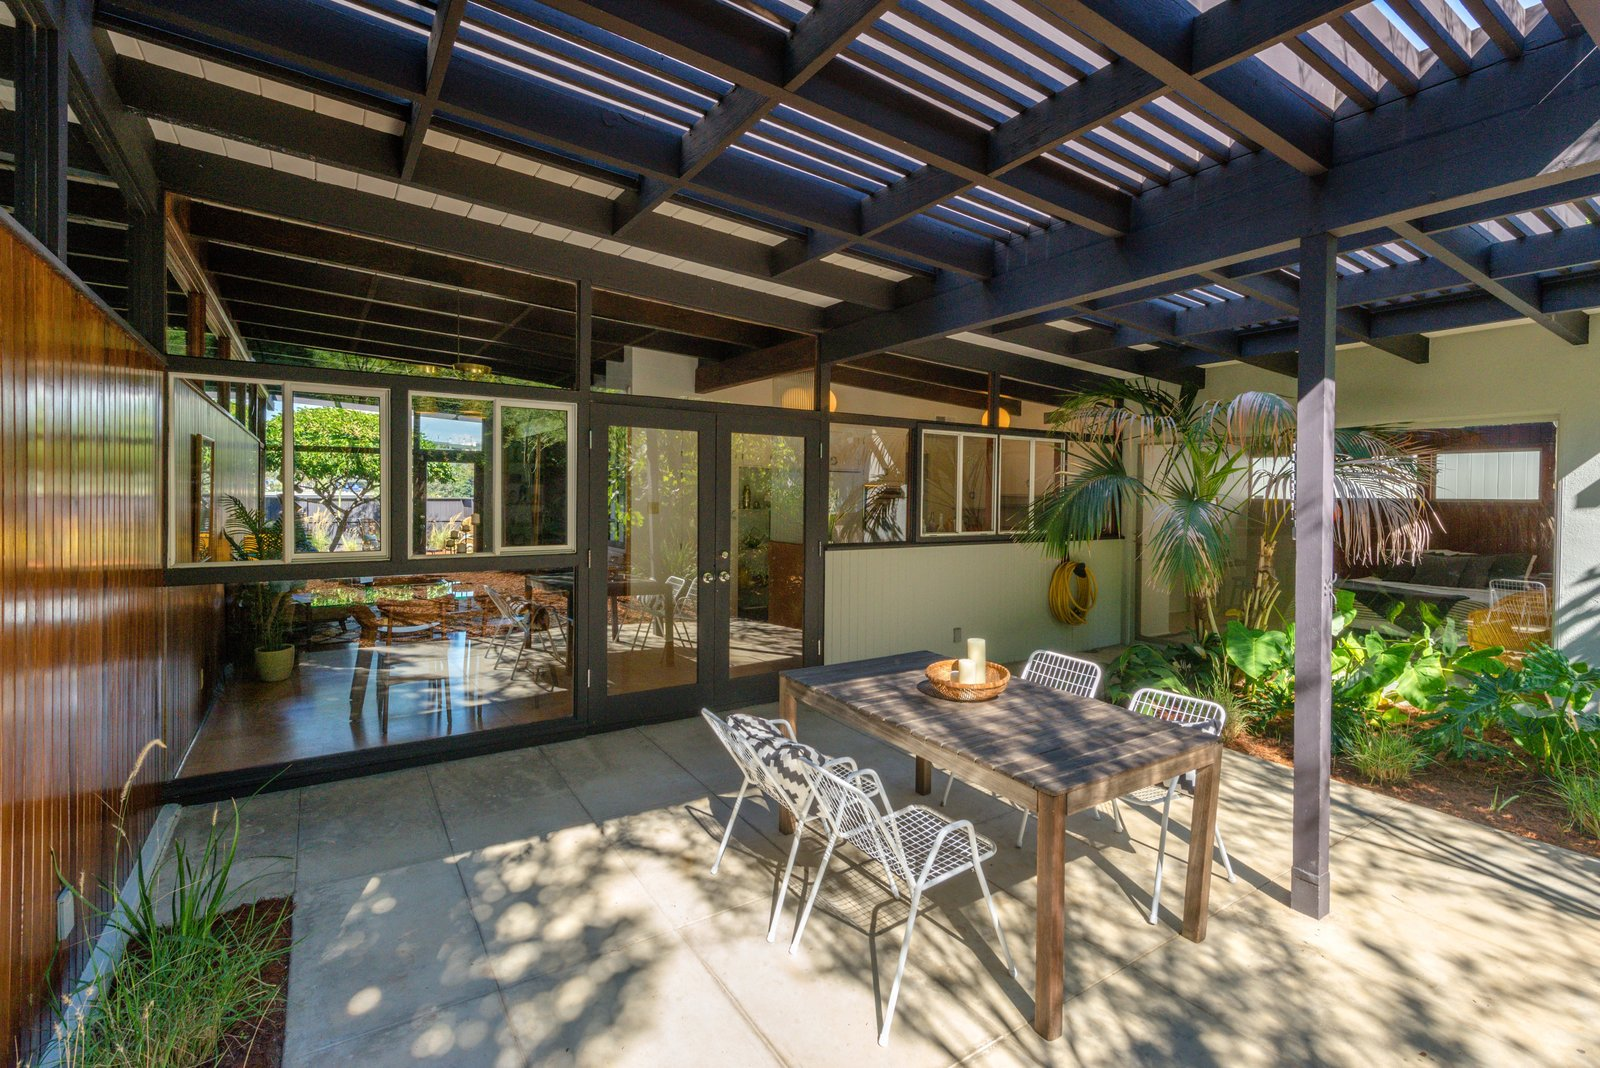 Outdoor, Large Patio, Porch, Deck, Side Yard, Shrubs, Hardscapes, Gardens, and Trees The outdoor space.  Best Photos from Snag This Hollywood Hills Midcentury Home For $1M